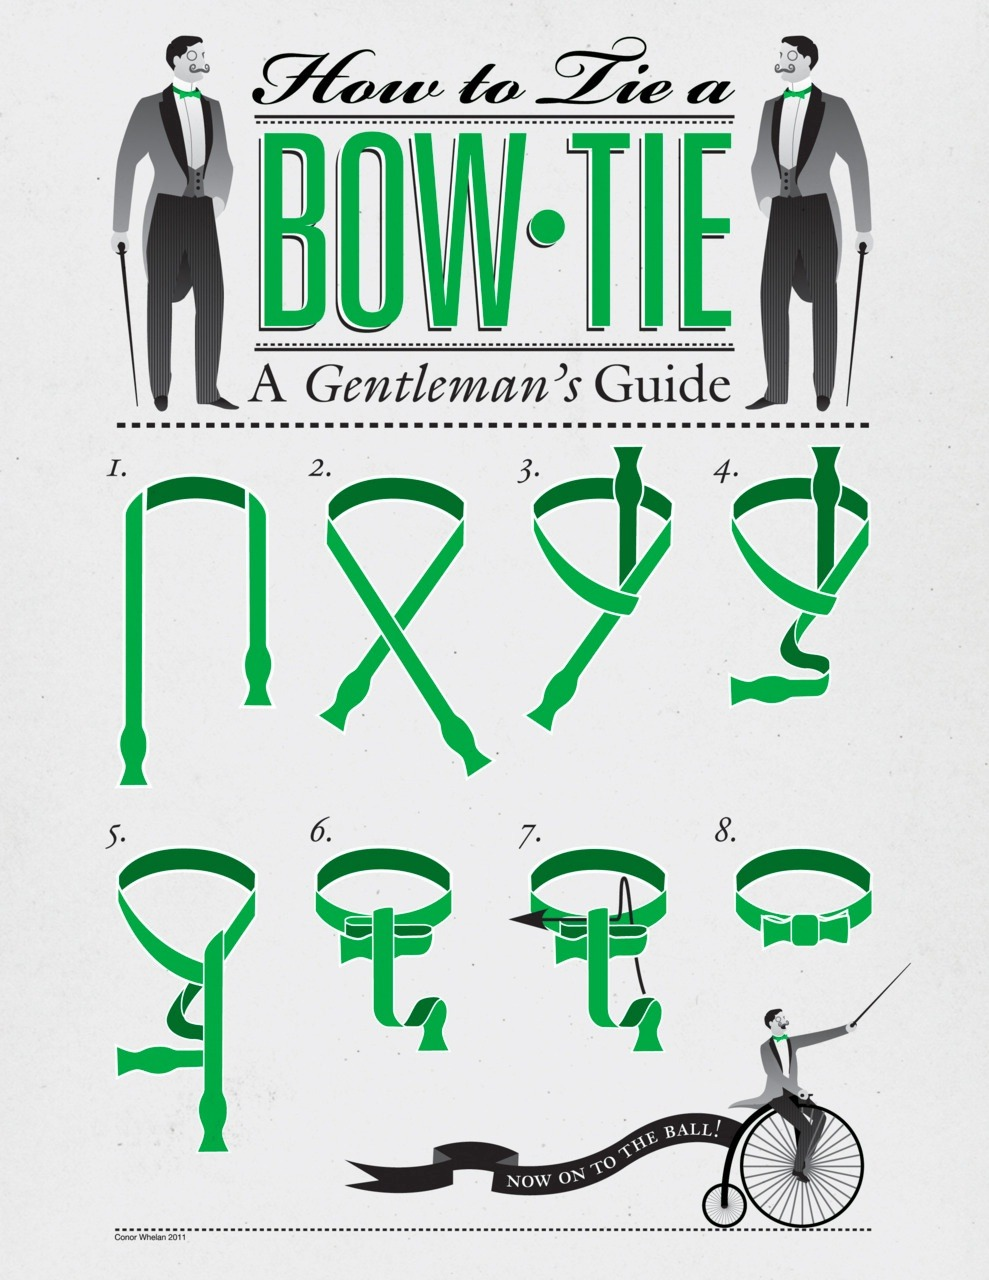 Steps for how to tie a bow tie, like a gentleman